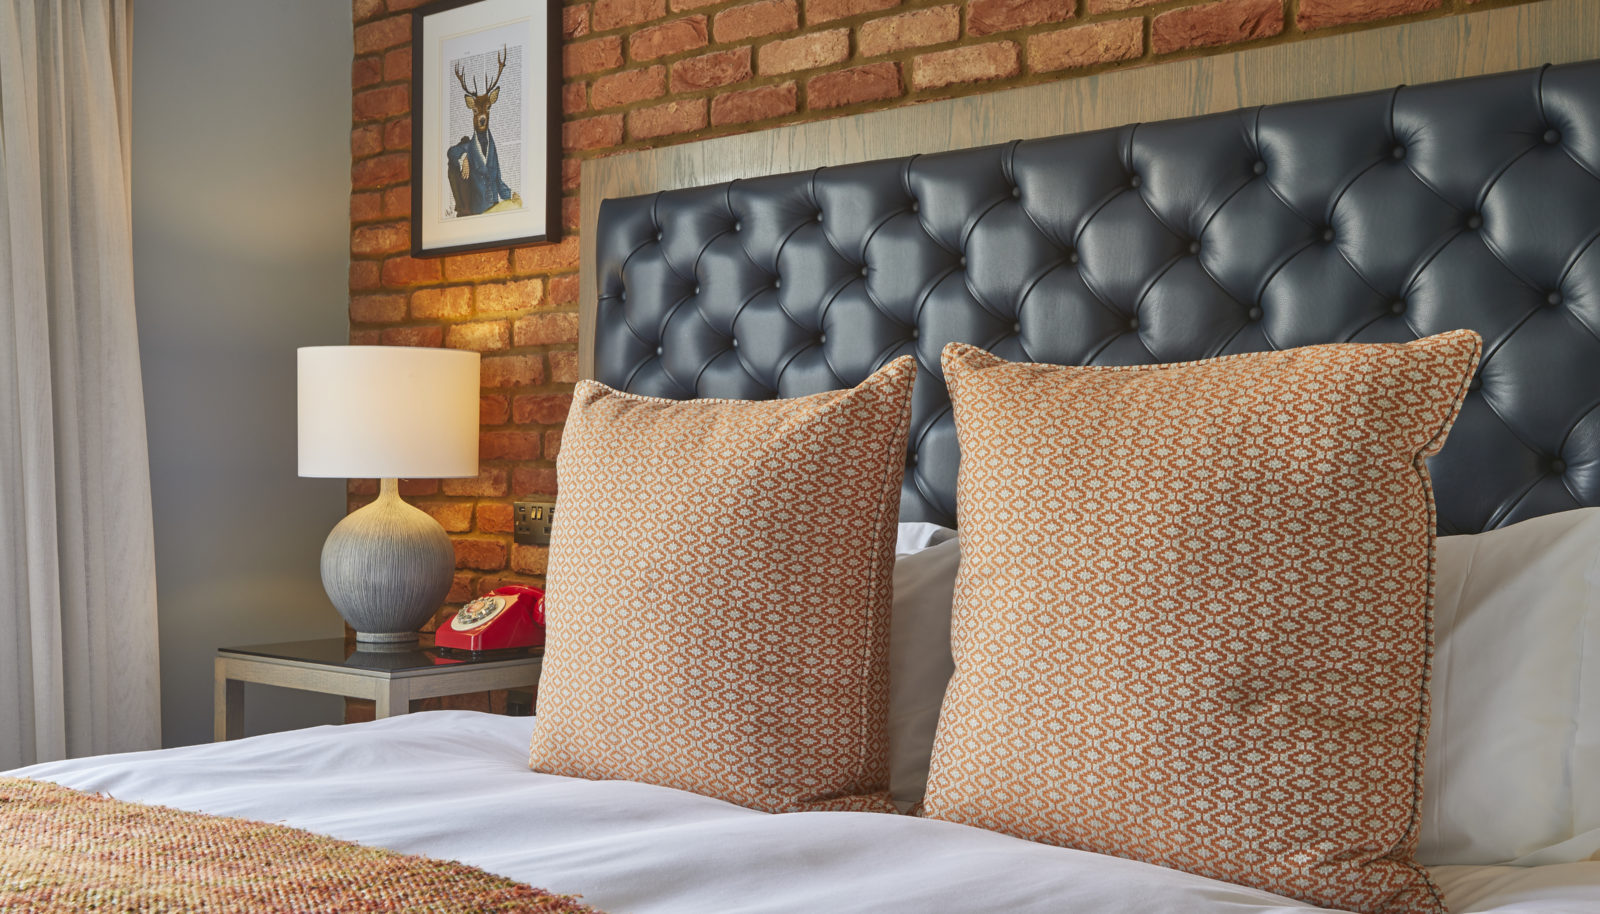 Cushions on bed with brick wall and fun art